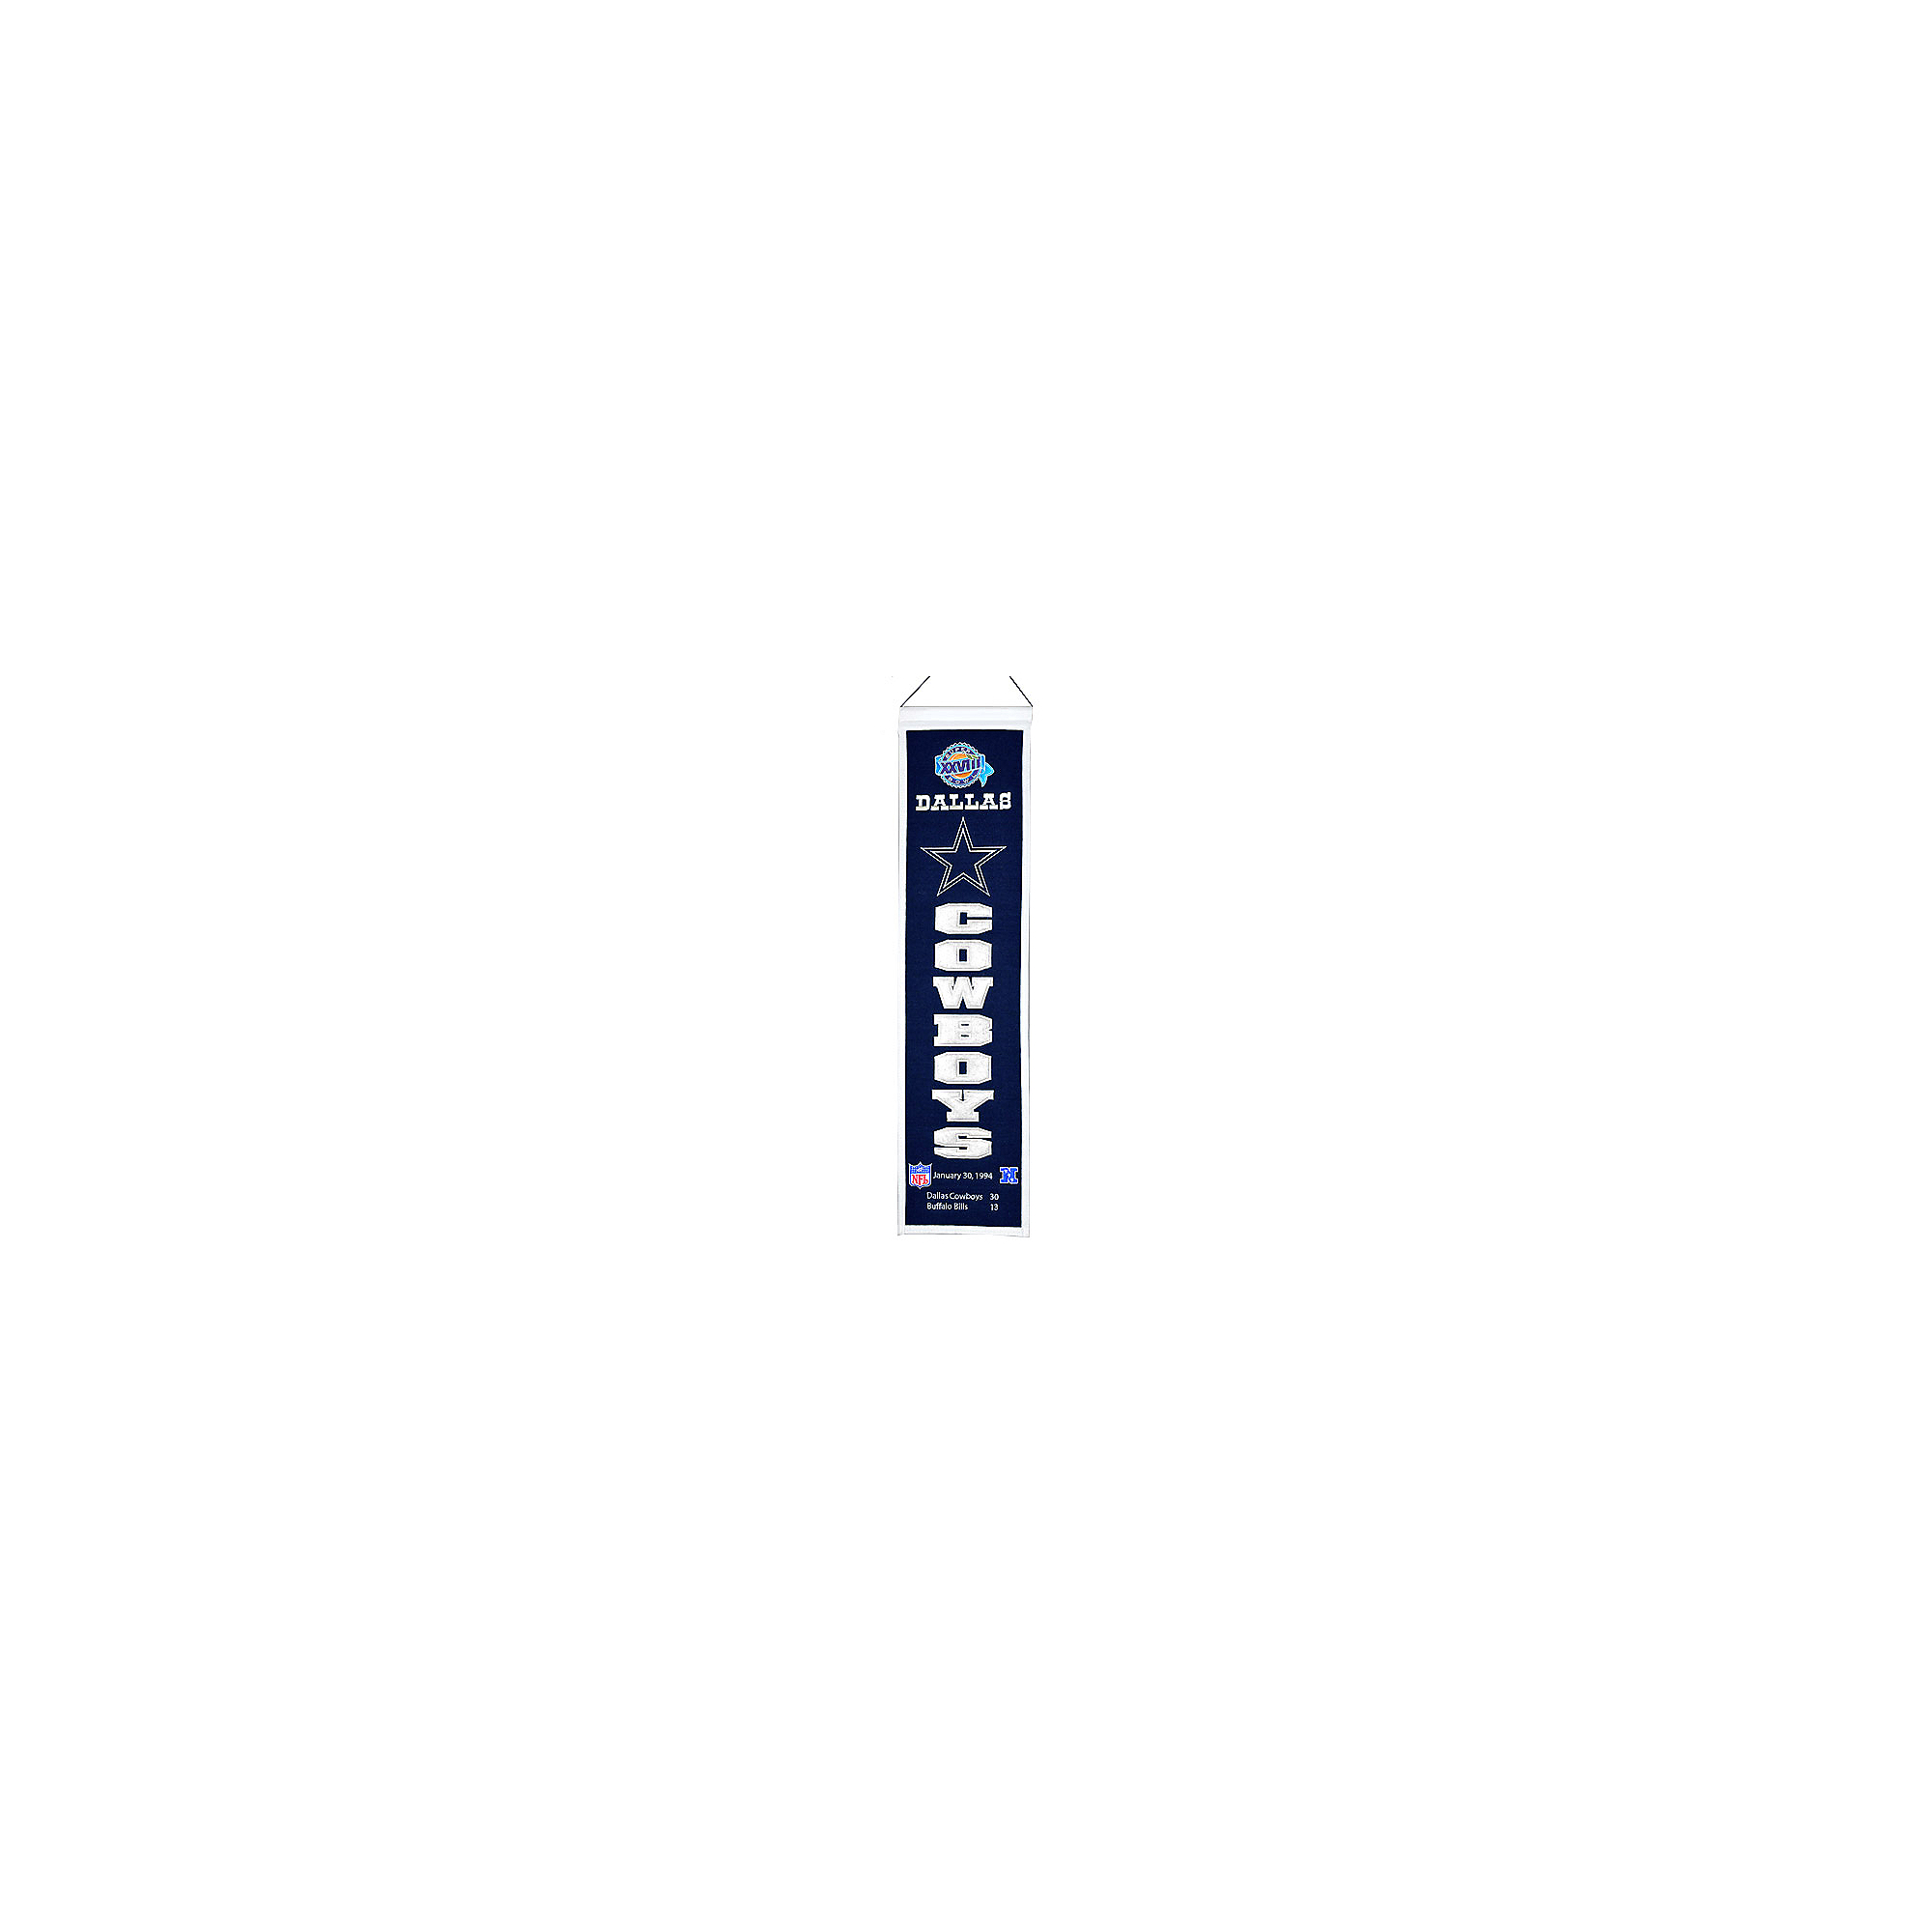 Dallas Cowboys Super Bowl XXVIII Heritage Banner